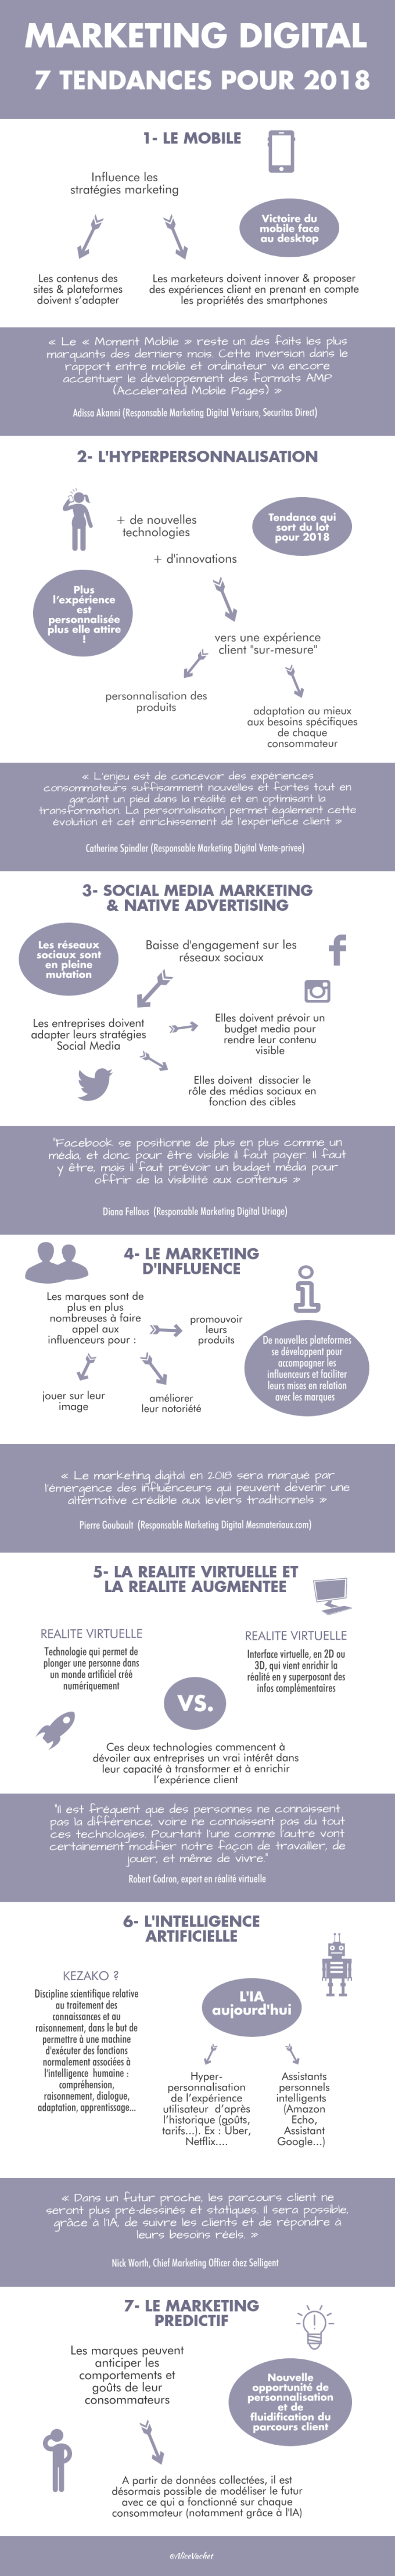 [INFOGRAPHIE] MARKETING DIGITAL : 7 Tendances pour 2018